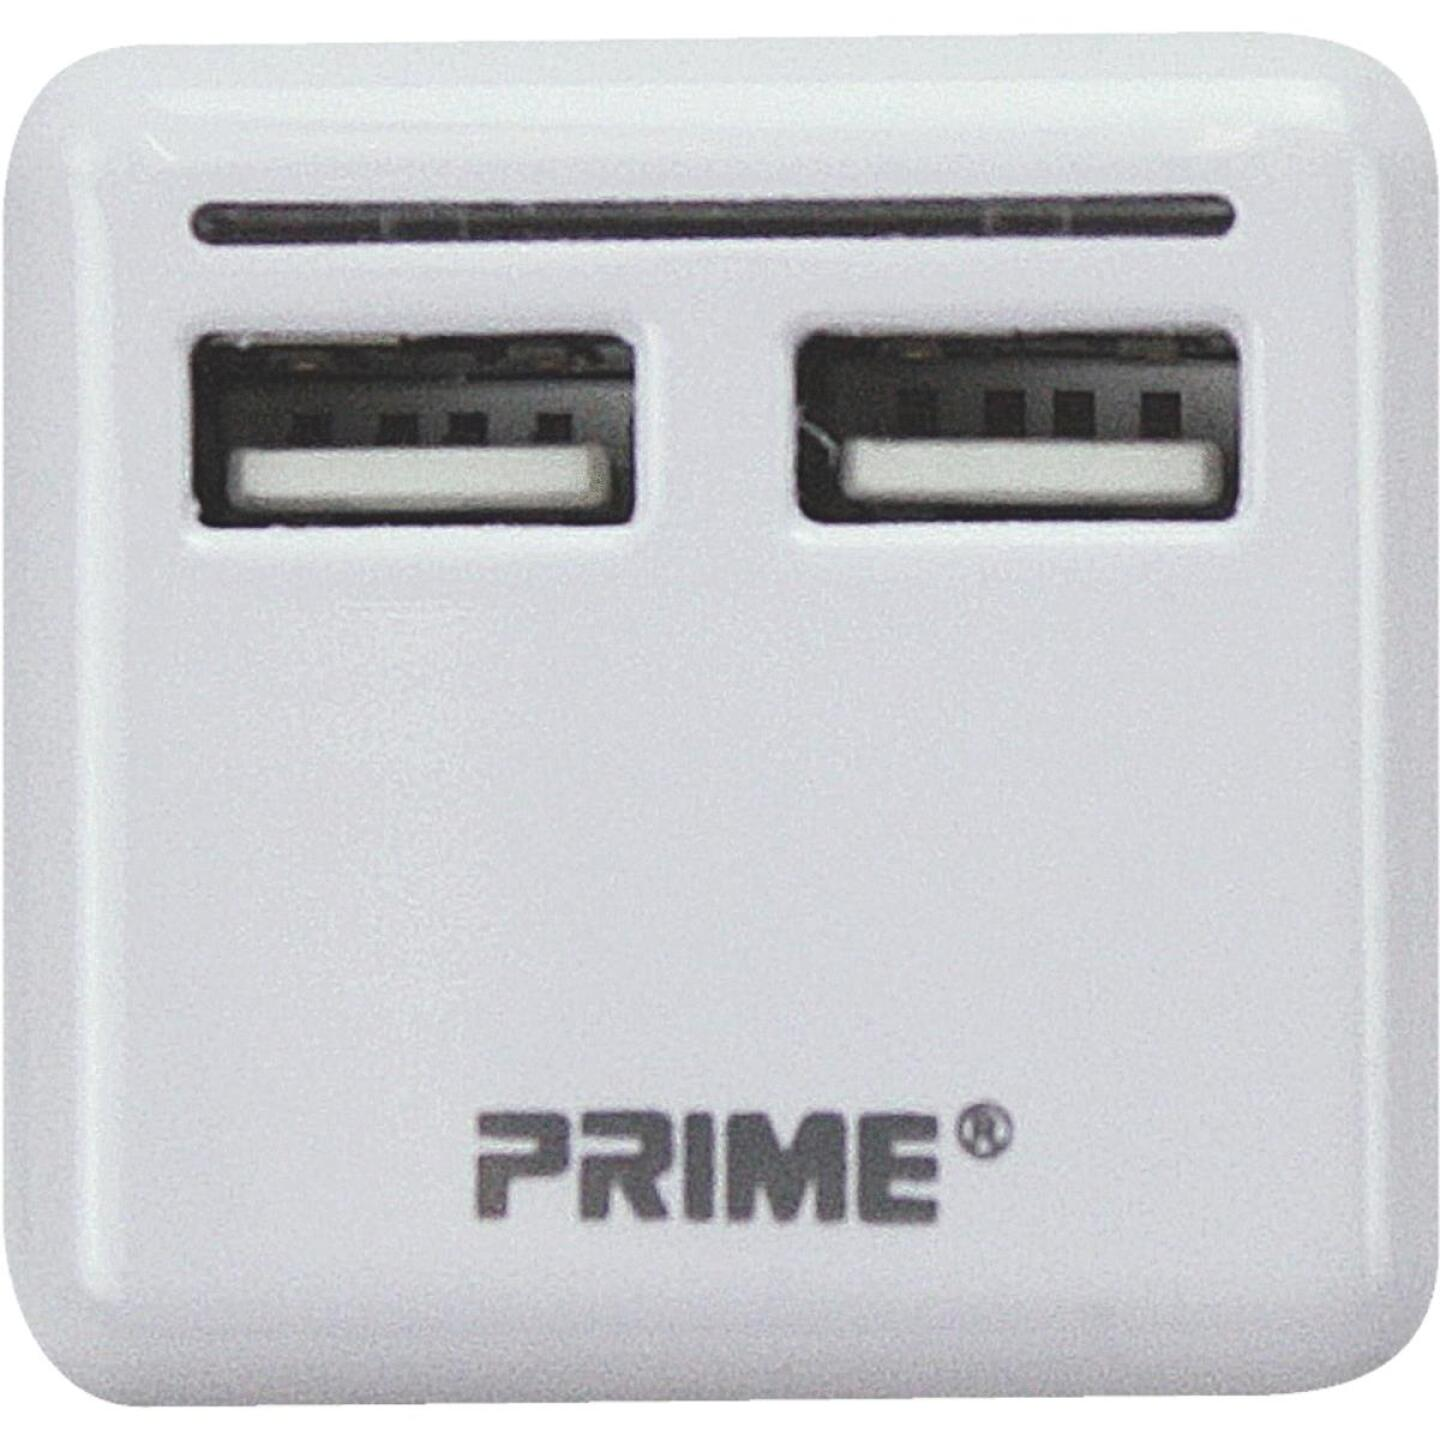 Prime Wire & Cable 2-Port White USB Charger Image 1